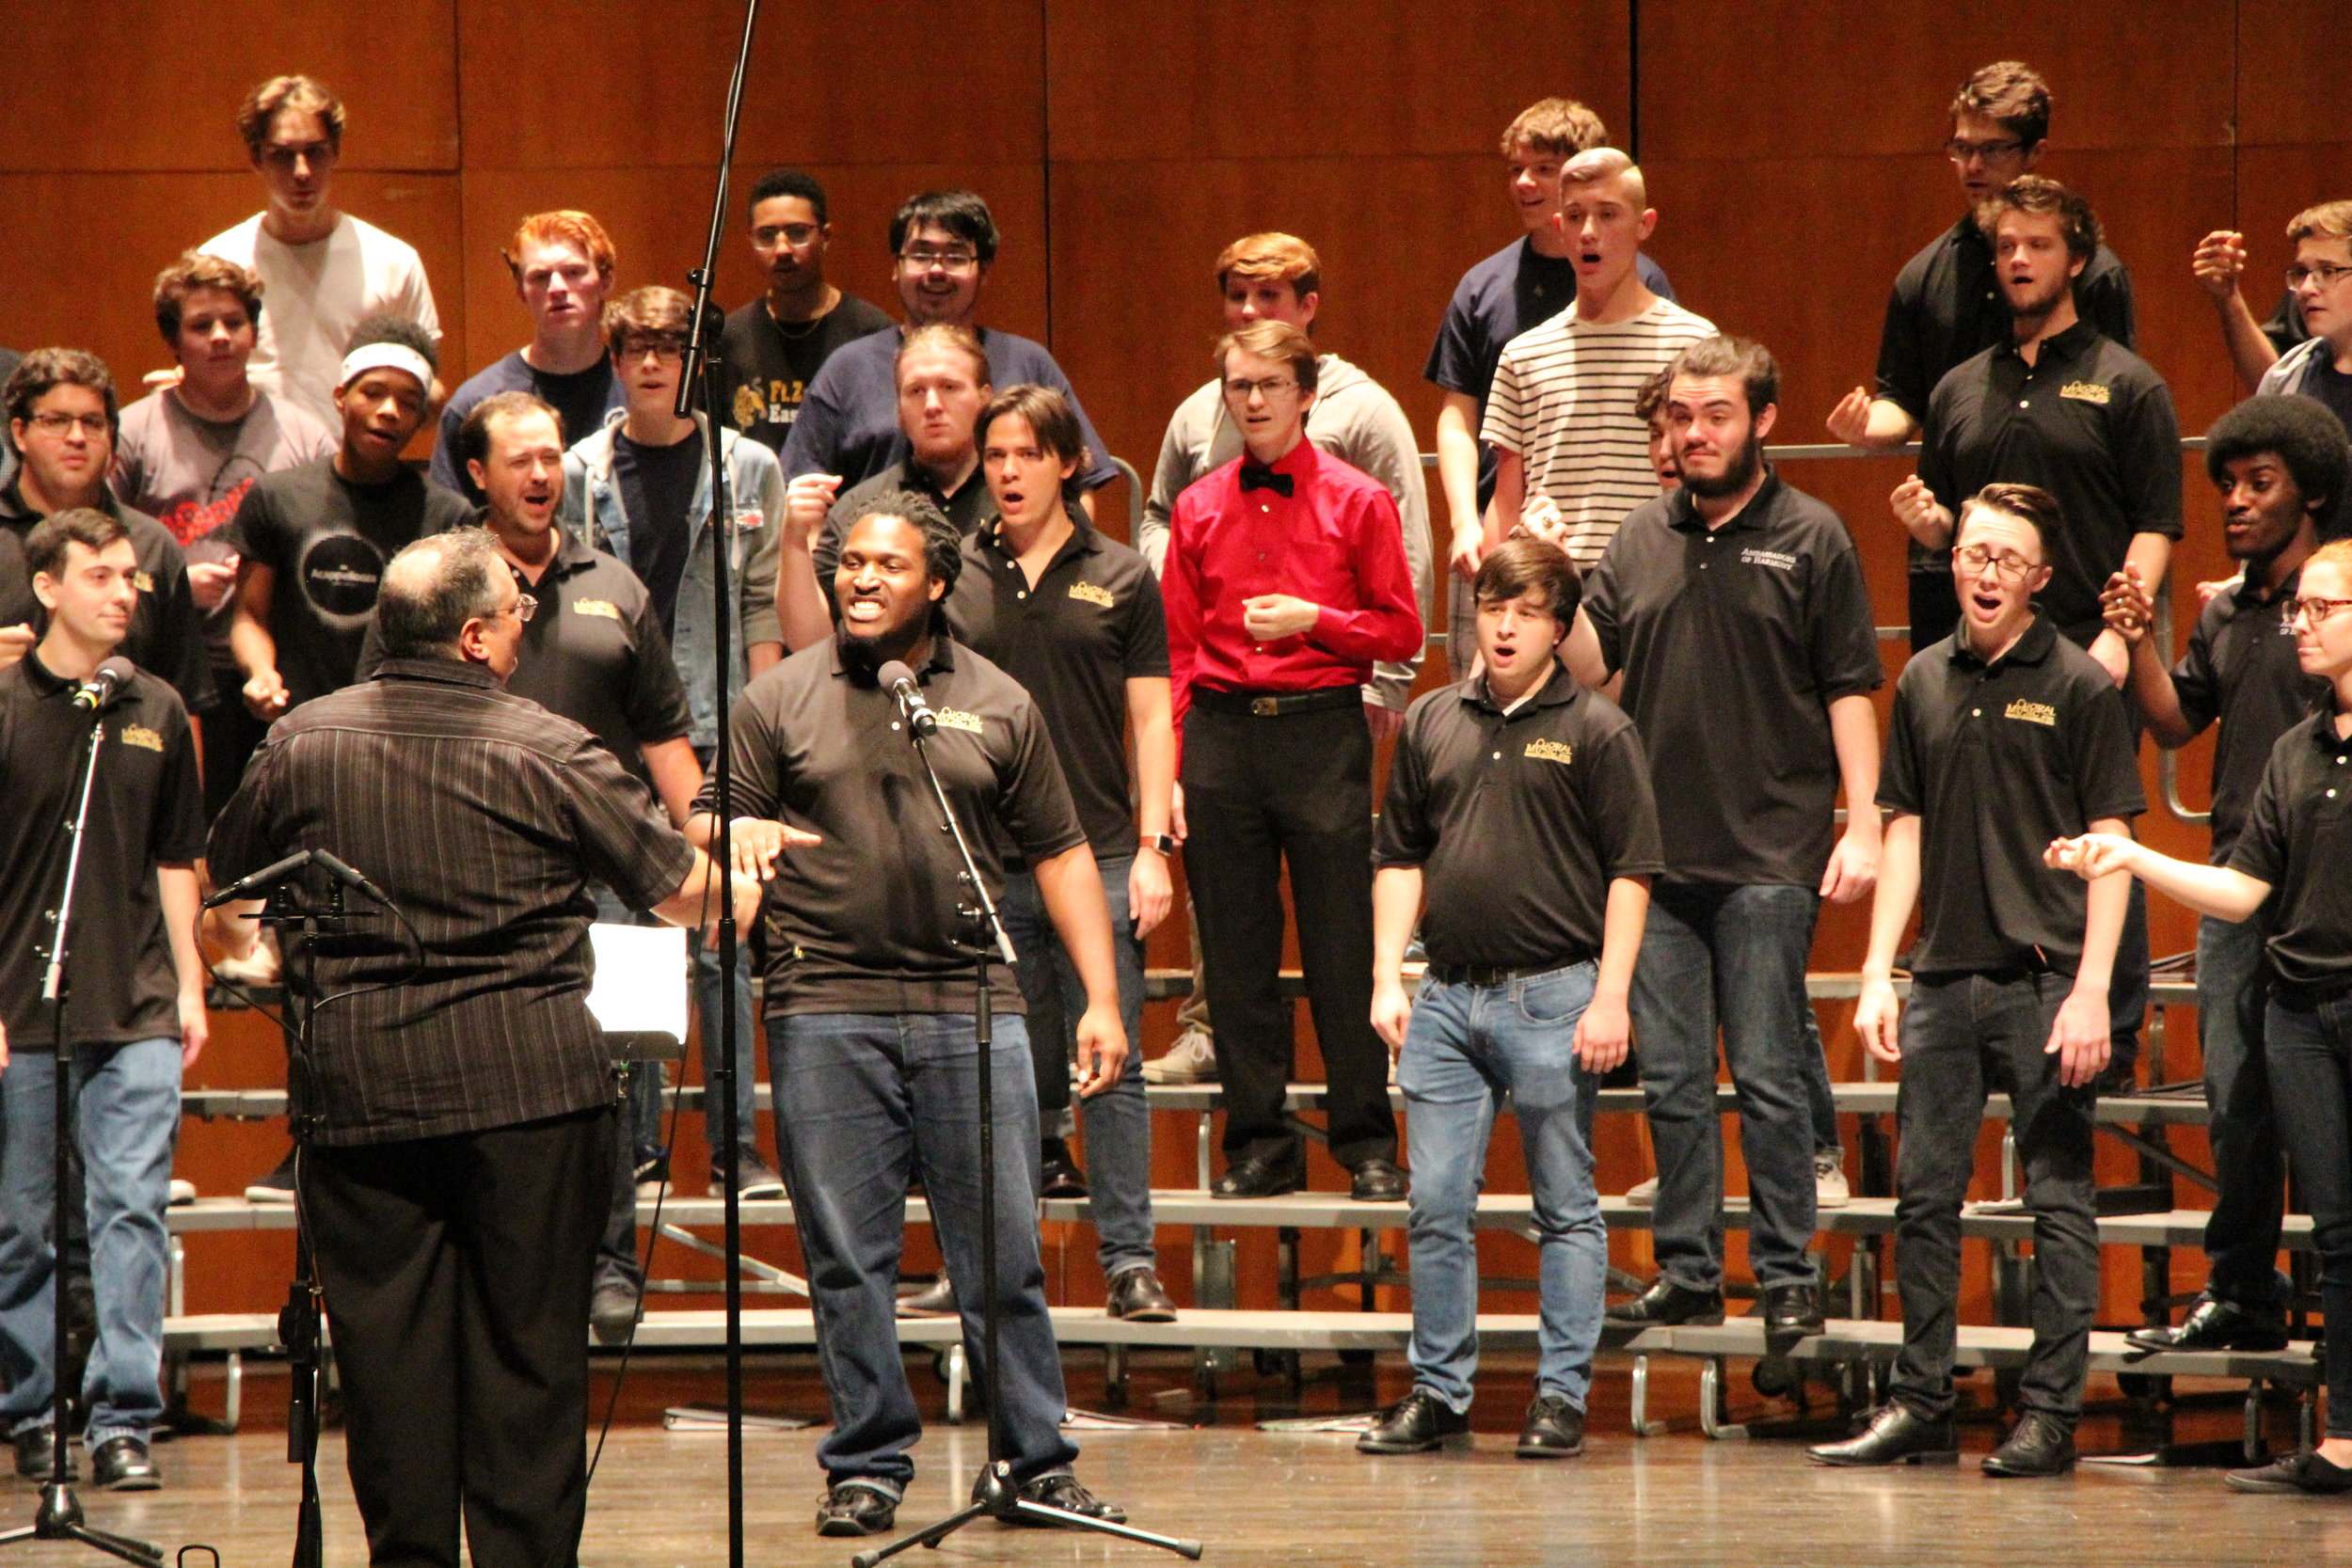 St. Louis-area high school boys sing at the 2017 Fall Acappellooza session, led by Jim Henry, co-director the Ambassadors of Harmony and choral music chair at the University of Missouri-St. Louis. Photo by Dave Revelle